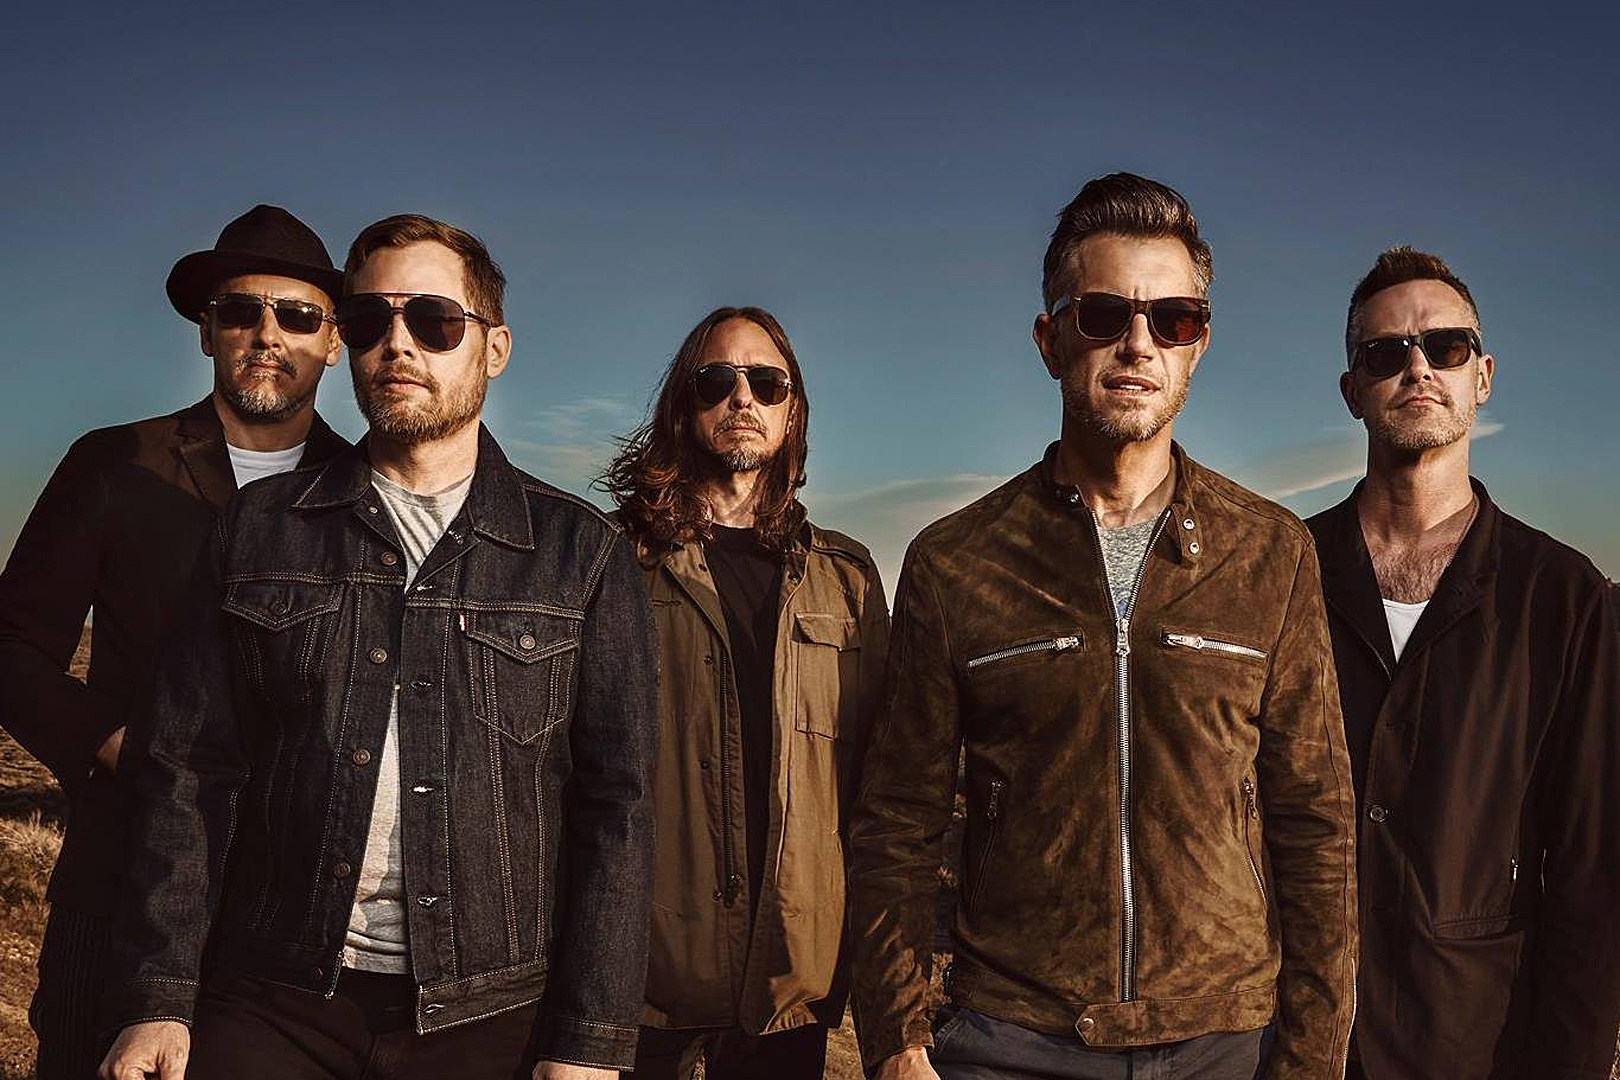 311 Drop Two Very Different New Songs